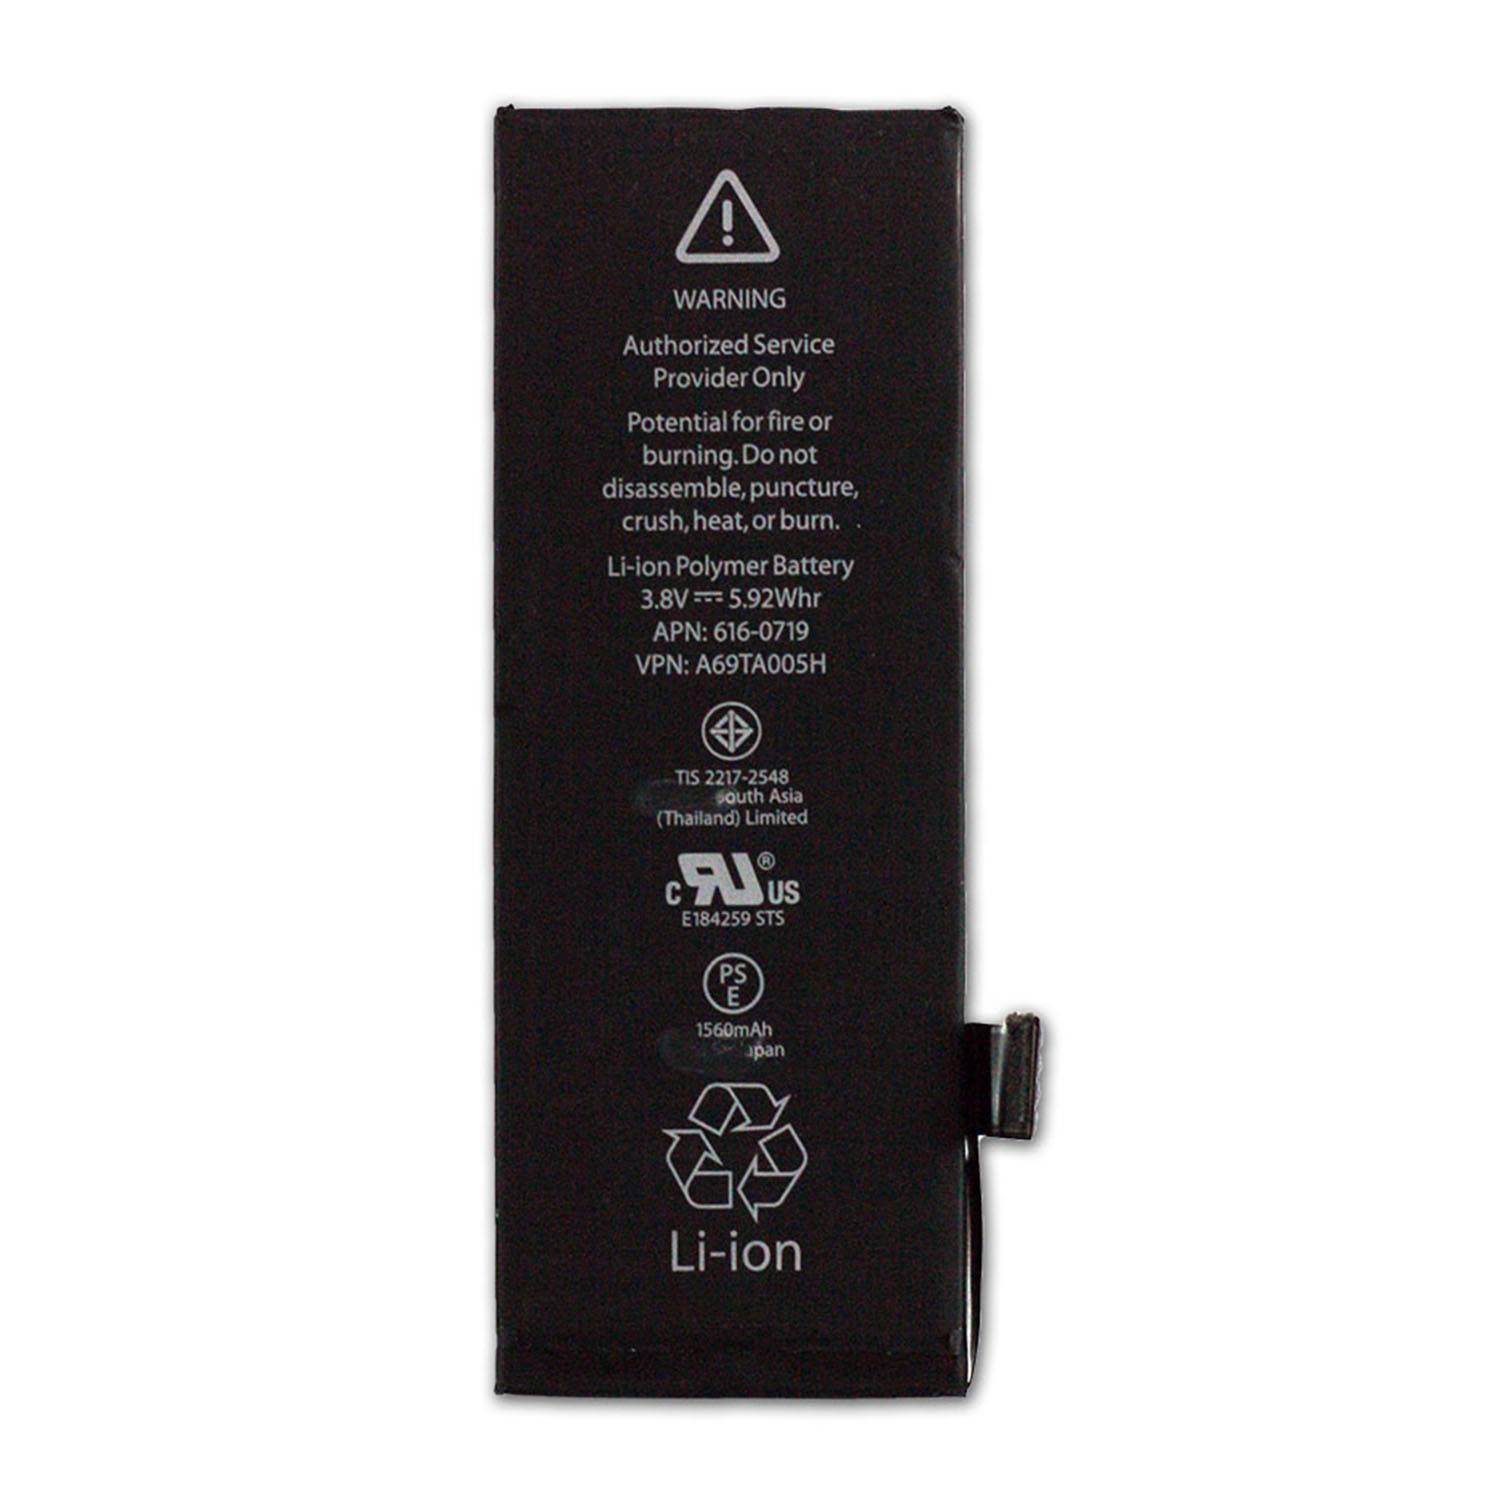 Mobile Phone Battery for iPhone 5s iPhone 5